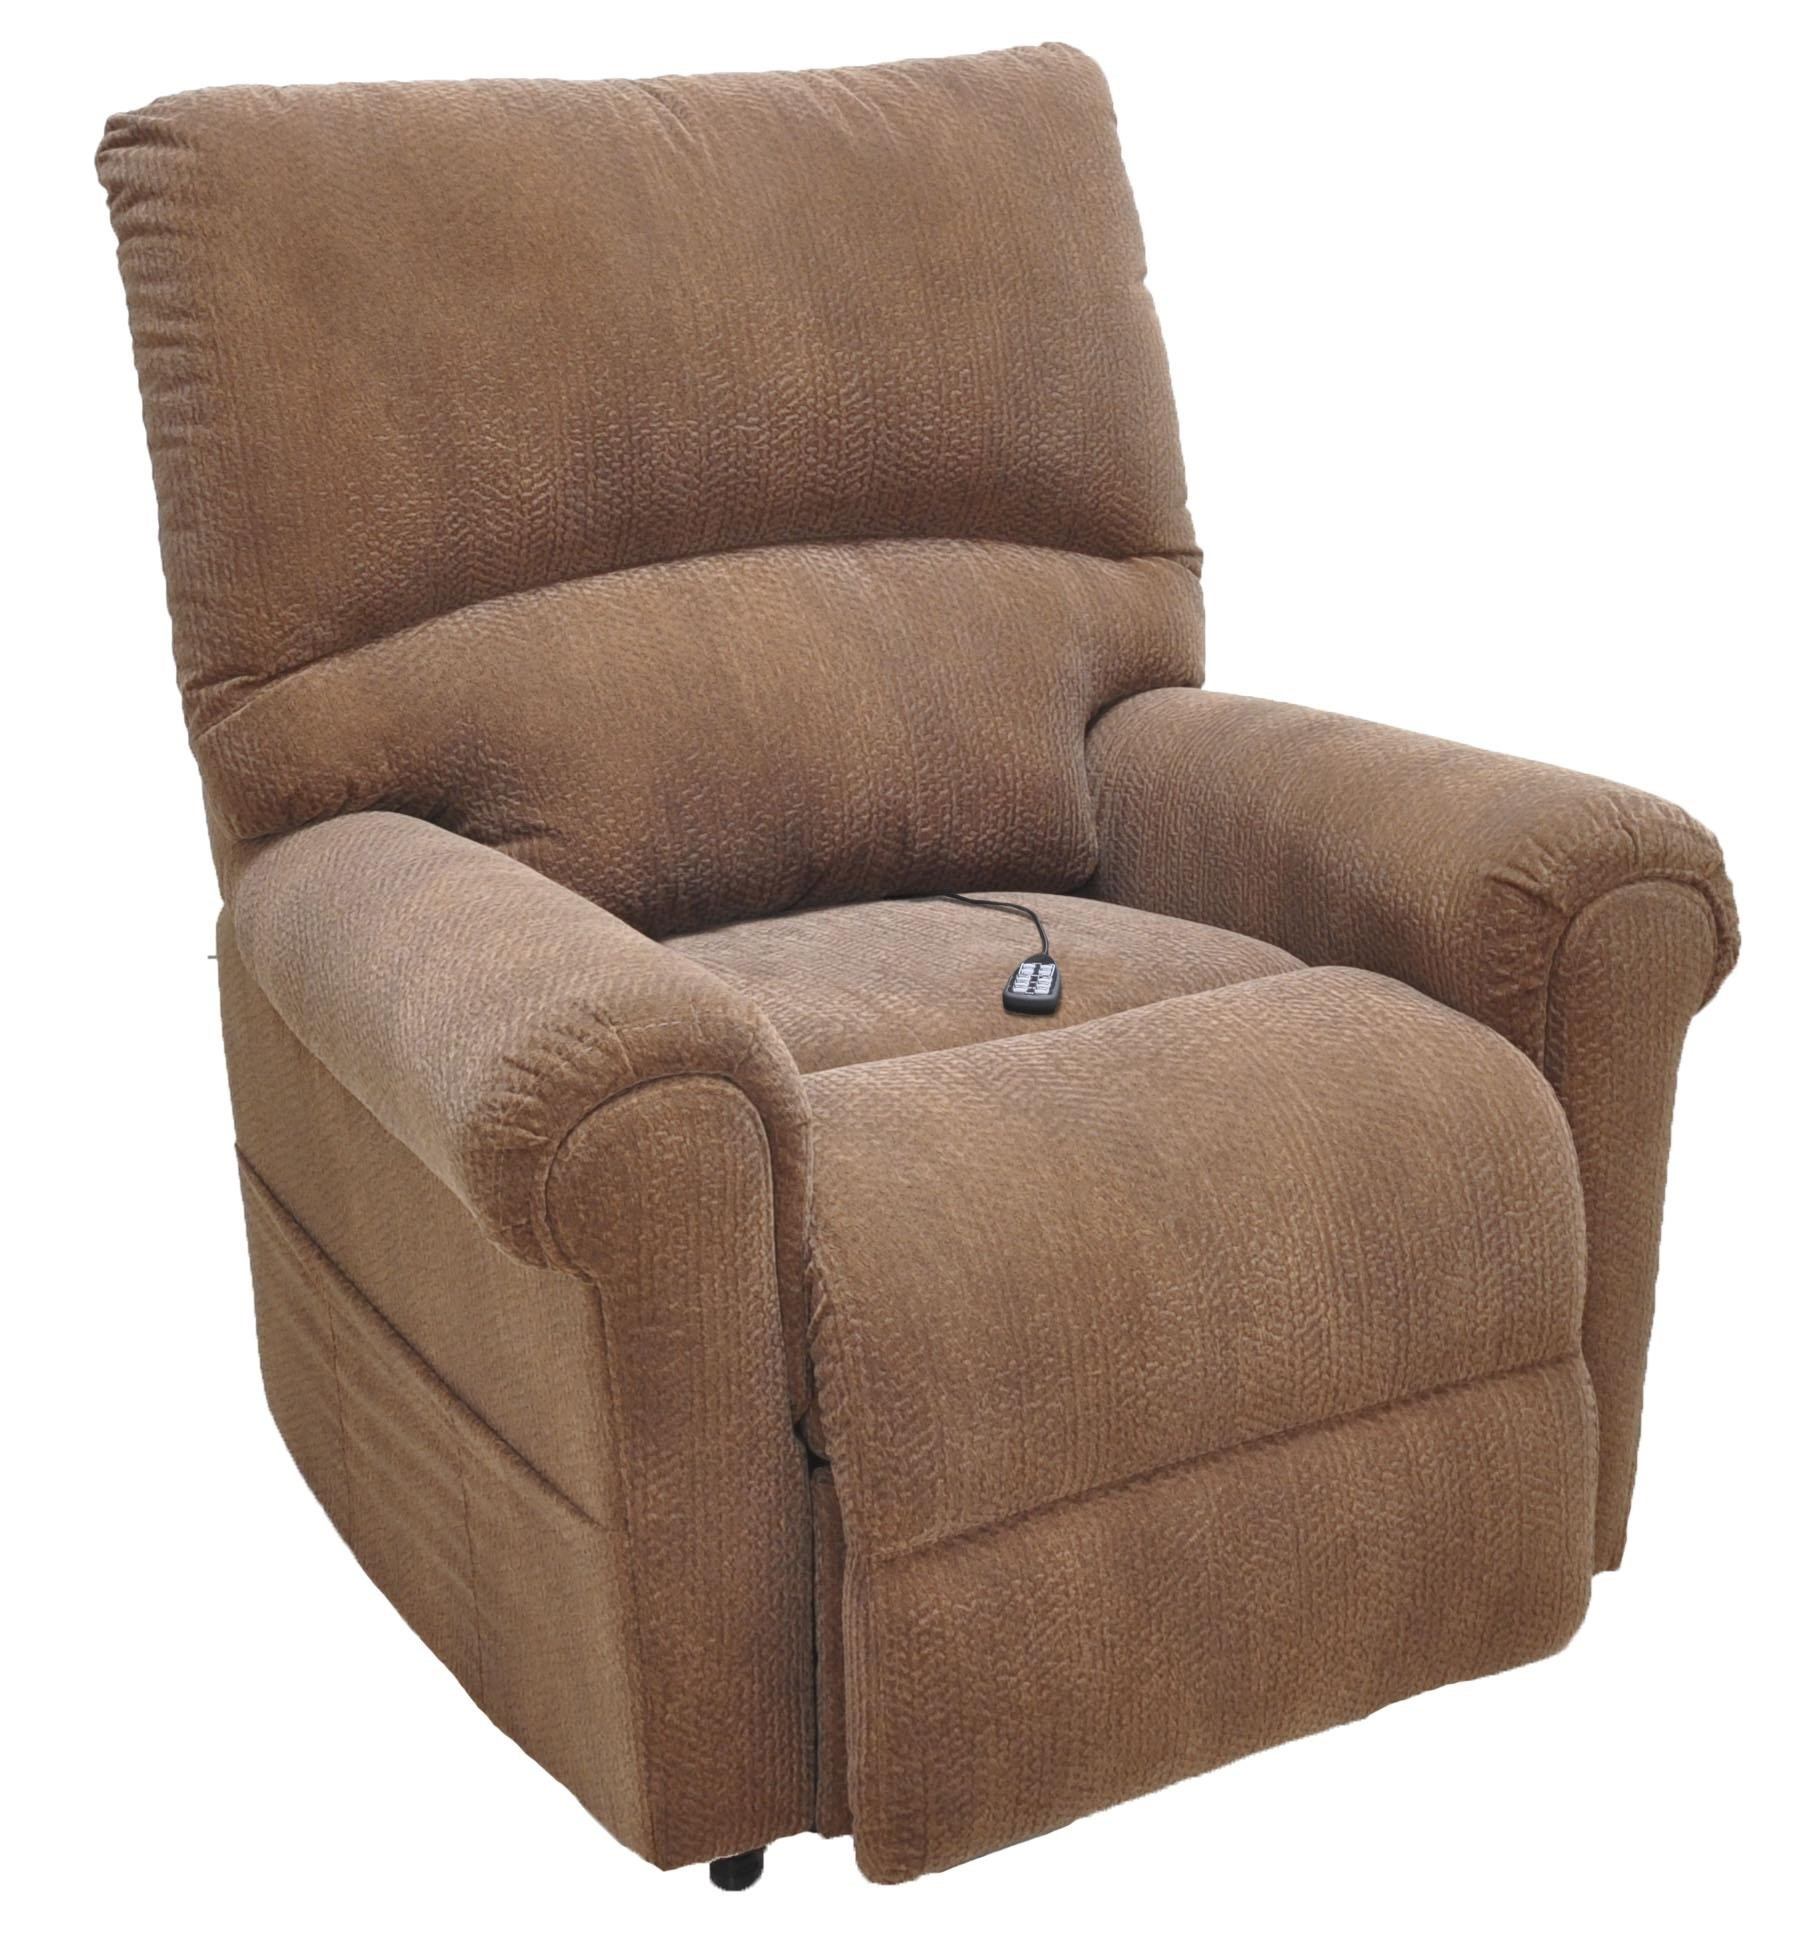 Franklin Lift and Power Recliners Independence Camel Lift Chair with Dual Motors - Great American Home Store - Lift Recliner  sc 1 st  Great American Home Store & Franklin Lift and Power Recliners Independence Camel Lift Chair ... islam-shia.org